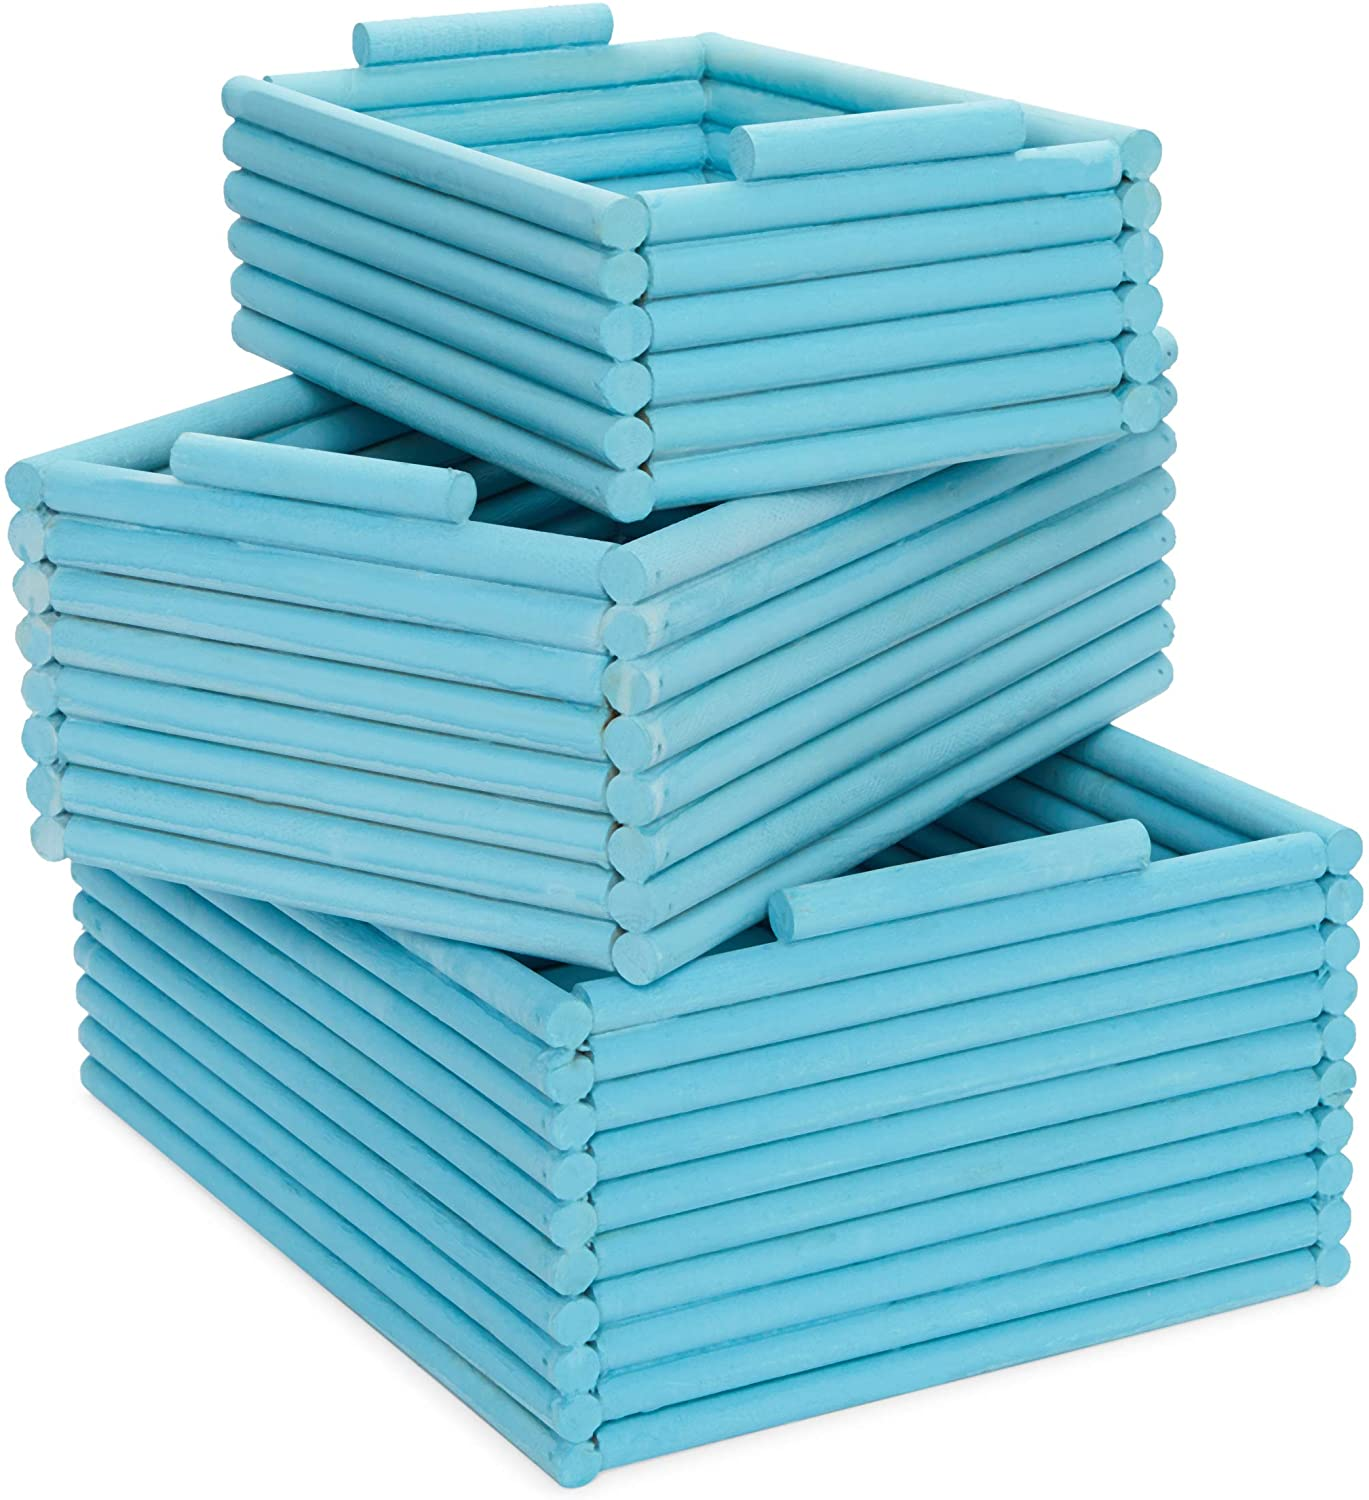 Blue Wooden Crate Nesting Boxes for Storage (3 Sizes, 3 Pieces)